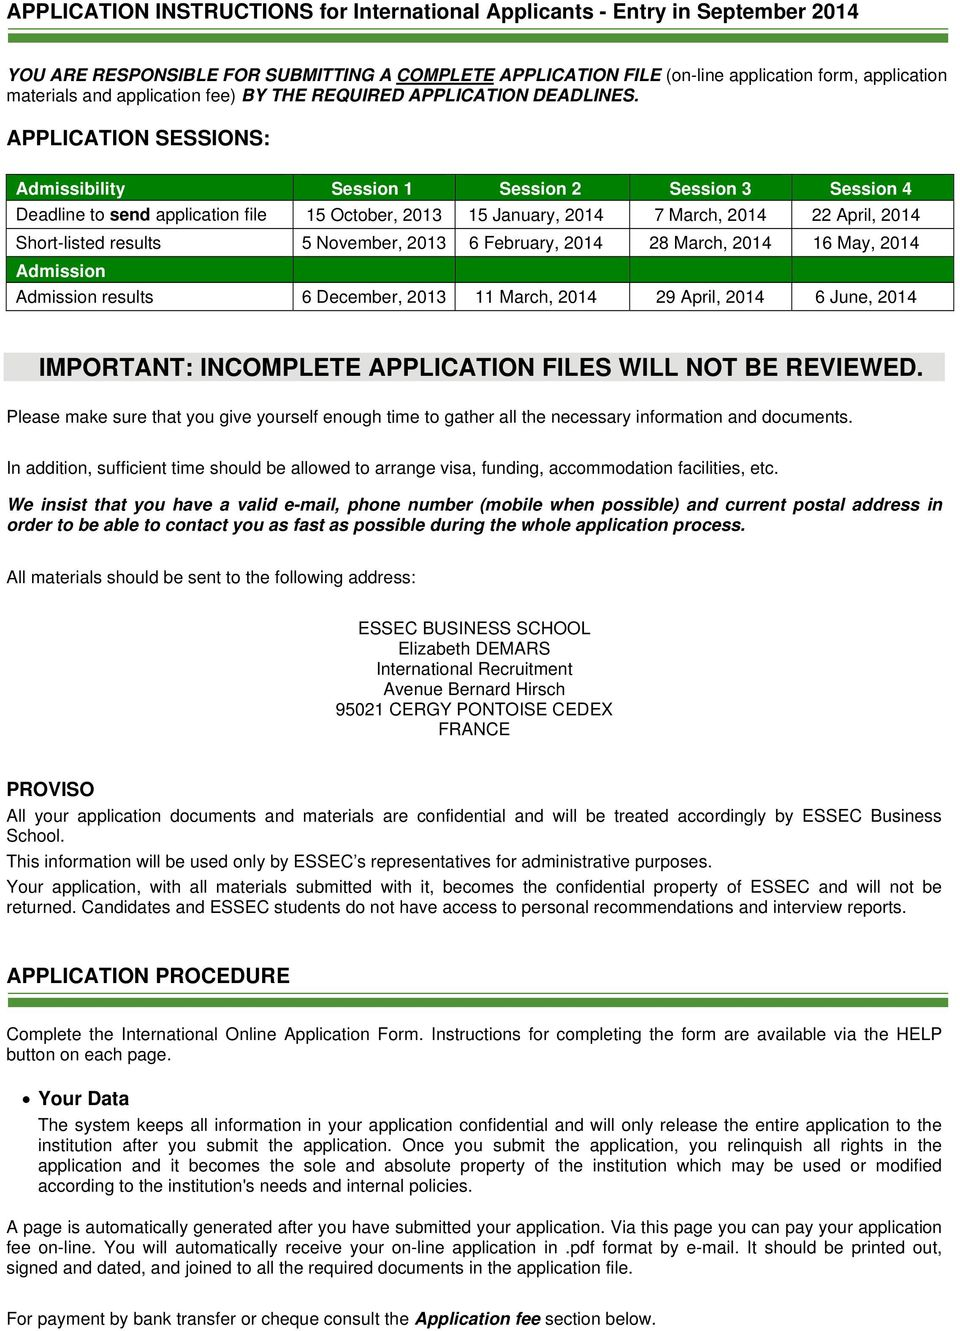 APPLICATION SESSIONS: Admissibility Session 1 Session 2 Session 3 Session 4 Deadline to send application file 15 October, 2013 15 January, 2014 7 March, 2014 22 April, 2014 Short-listed results 5